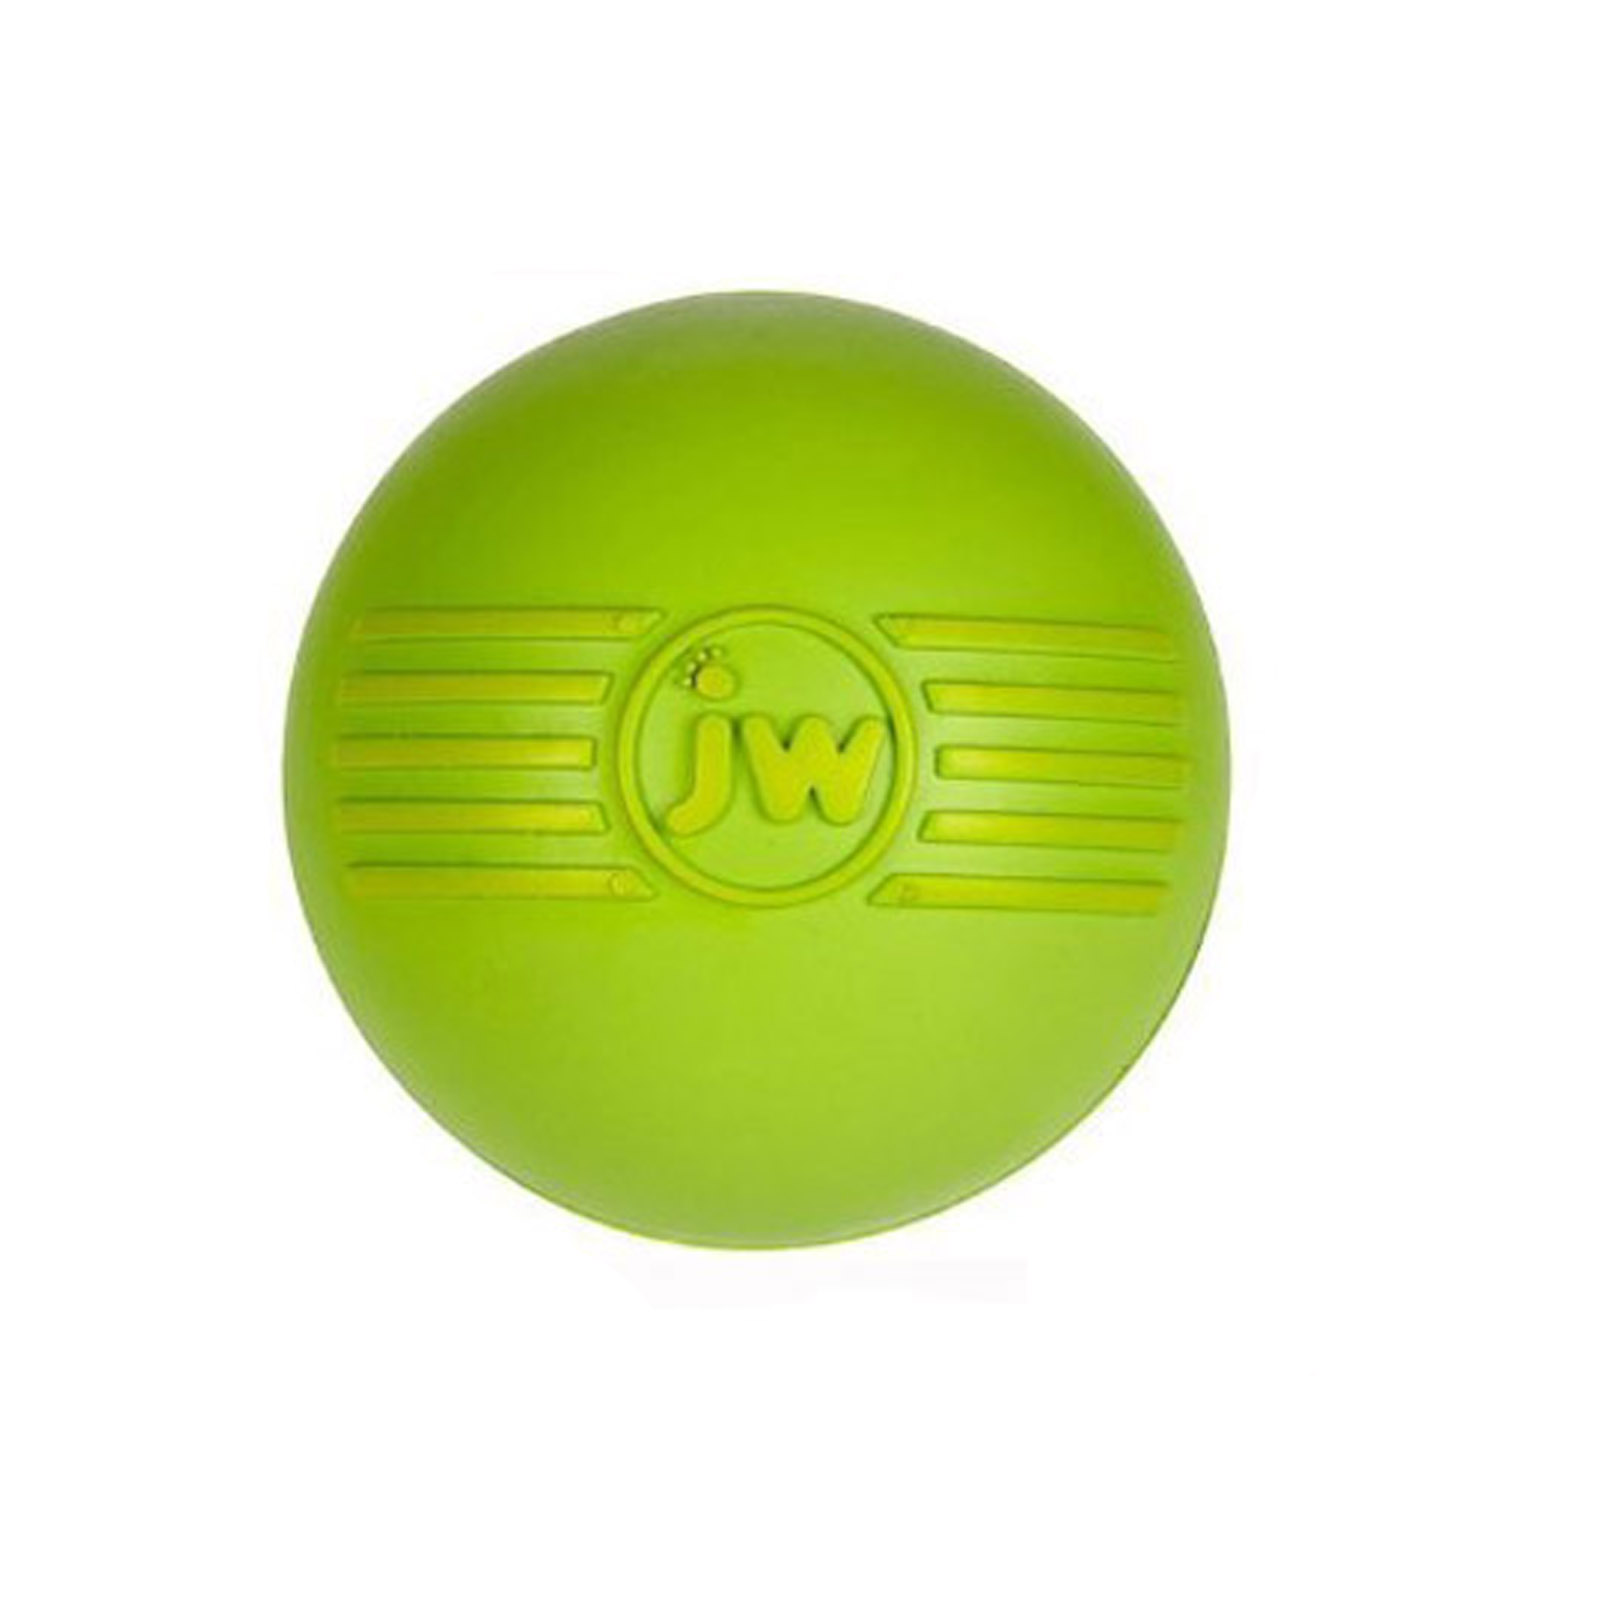 Jw Pet Company Toy Isqueak Ball Large 029V001713832000